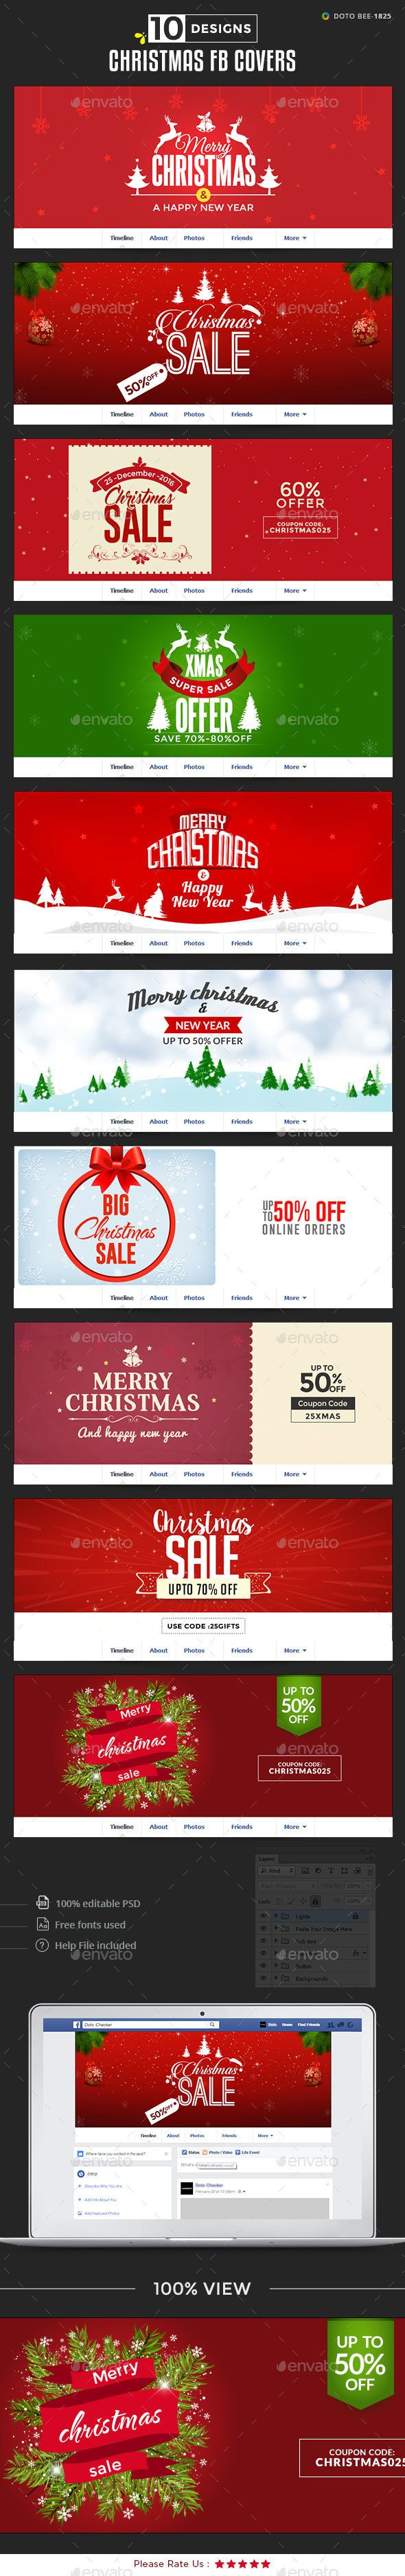 Christmas Facebook Covers   Designs  Timeline Covers Facebook